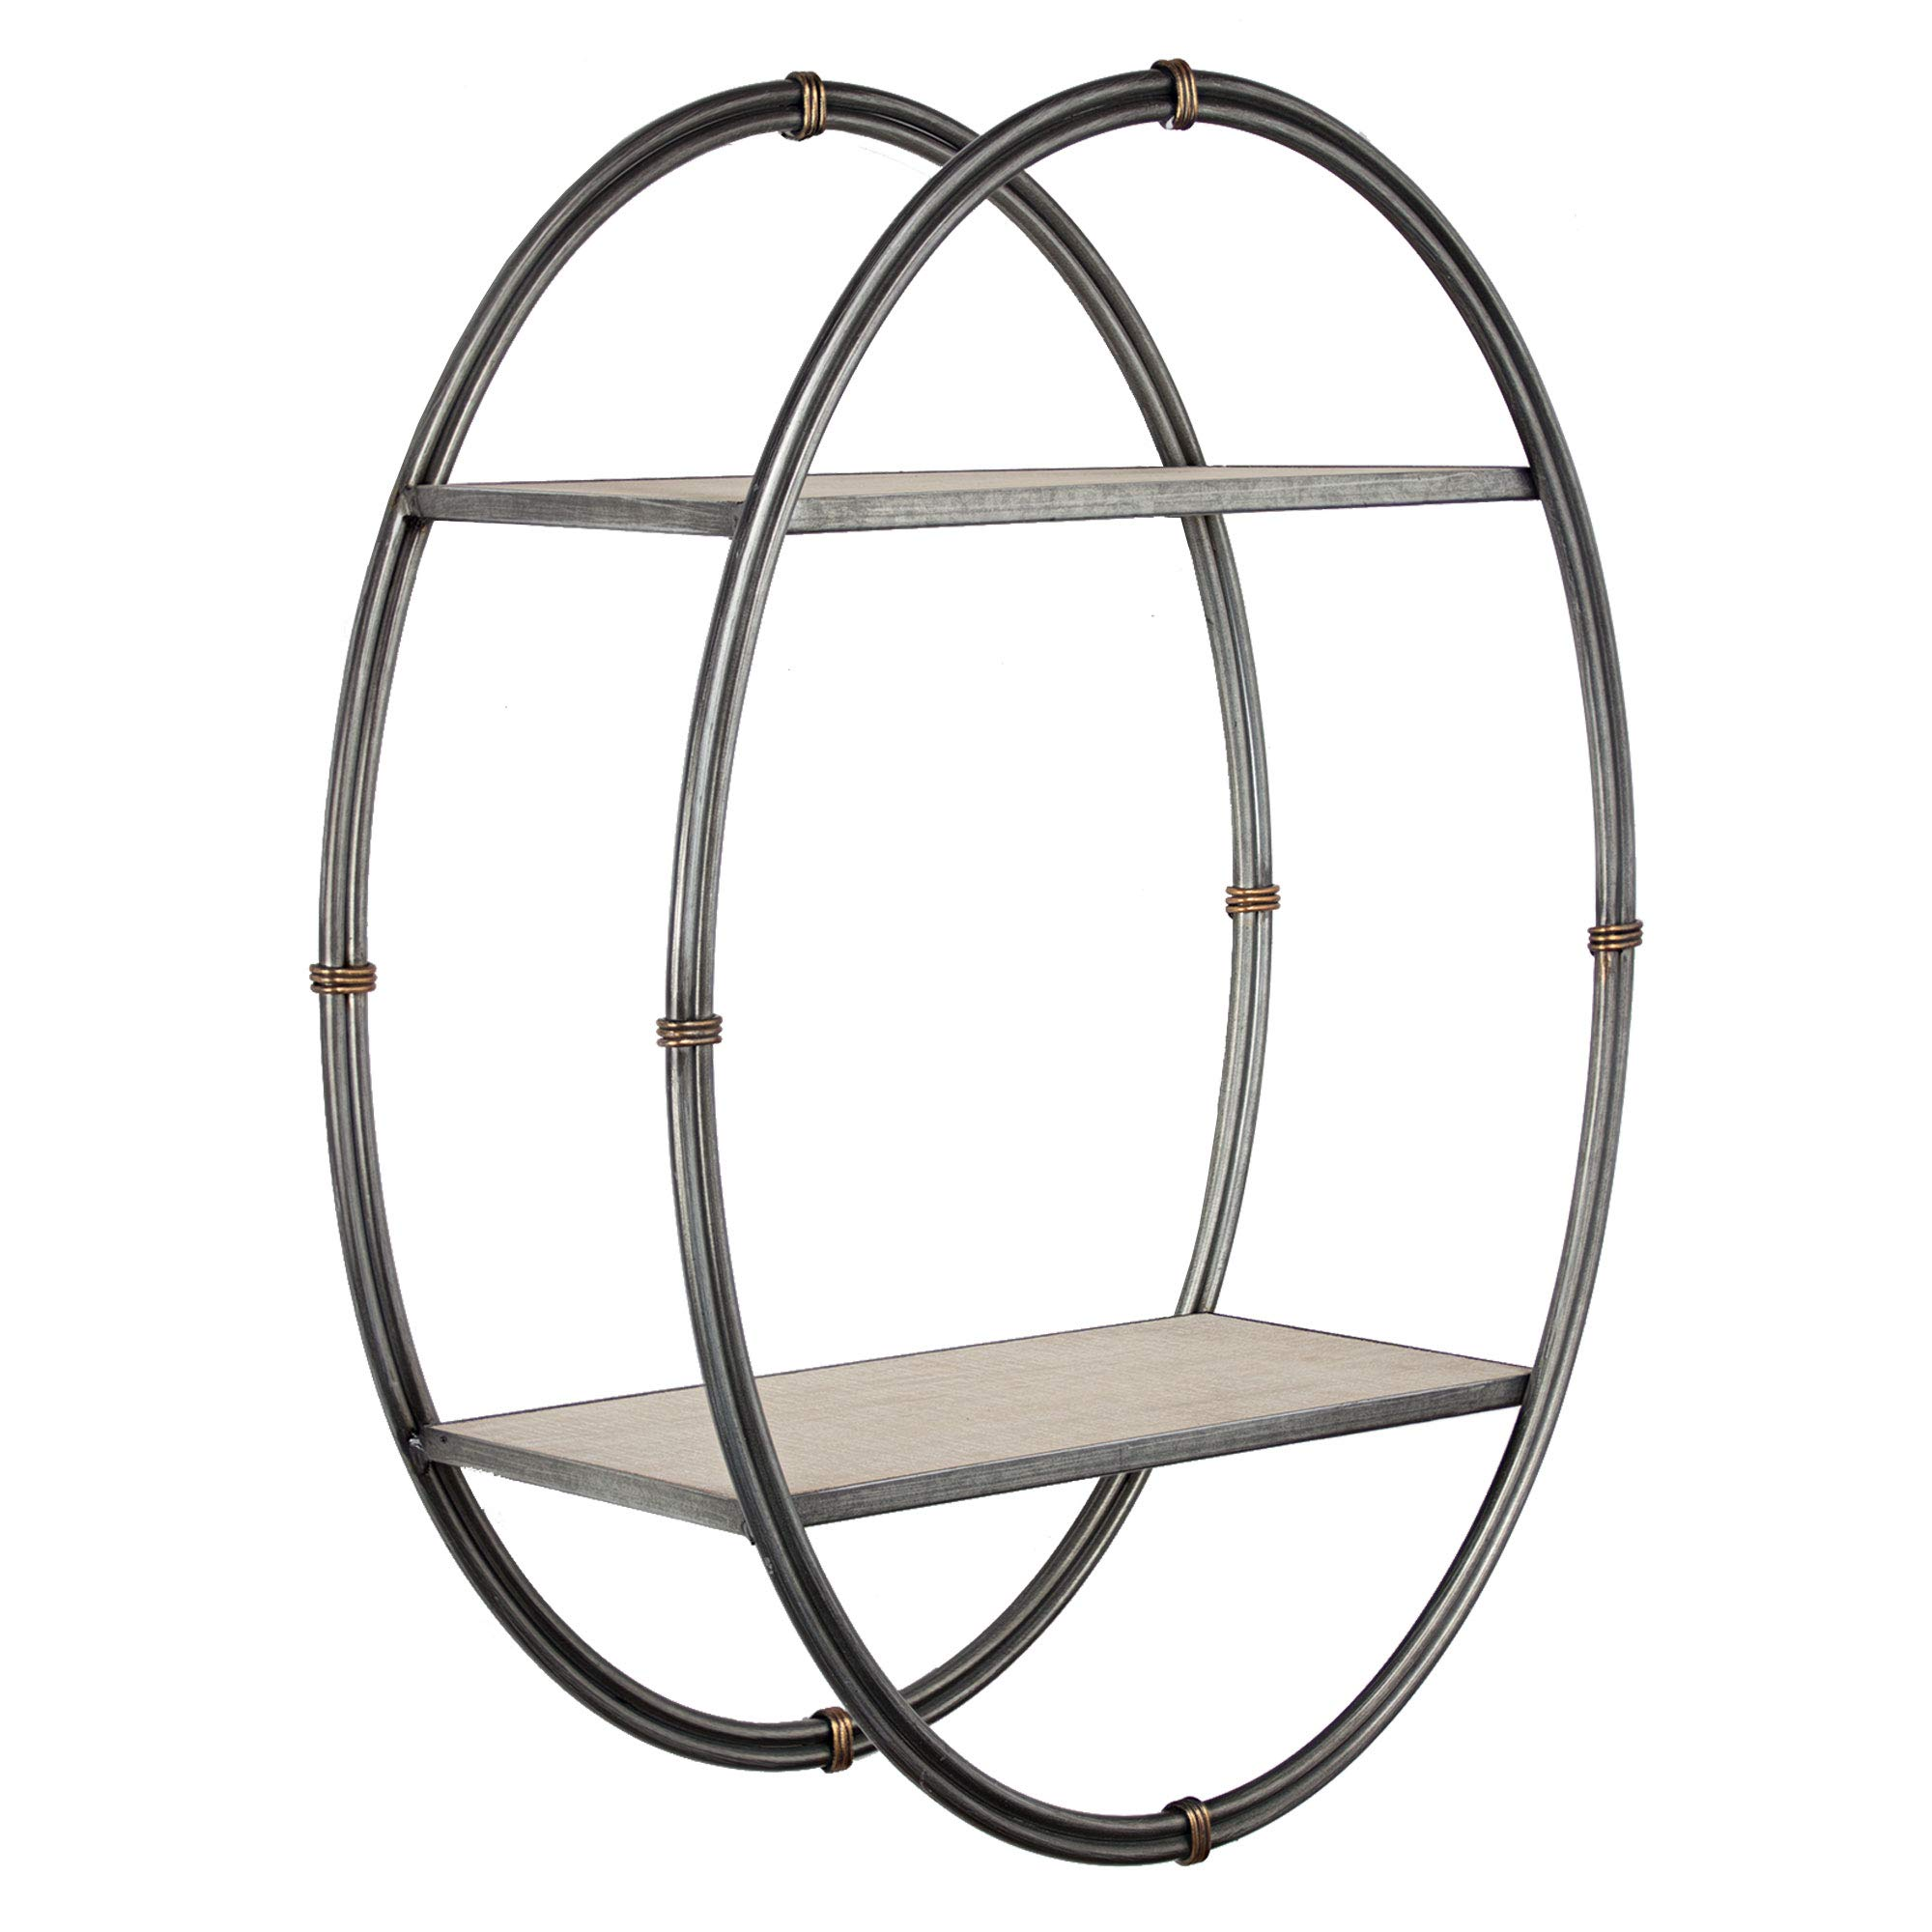 American Art Décor Wood and Metal Hanging Oval Wall Shelf and Rack – Farmhouse Décor